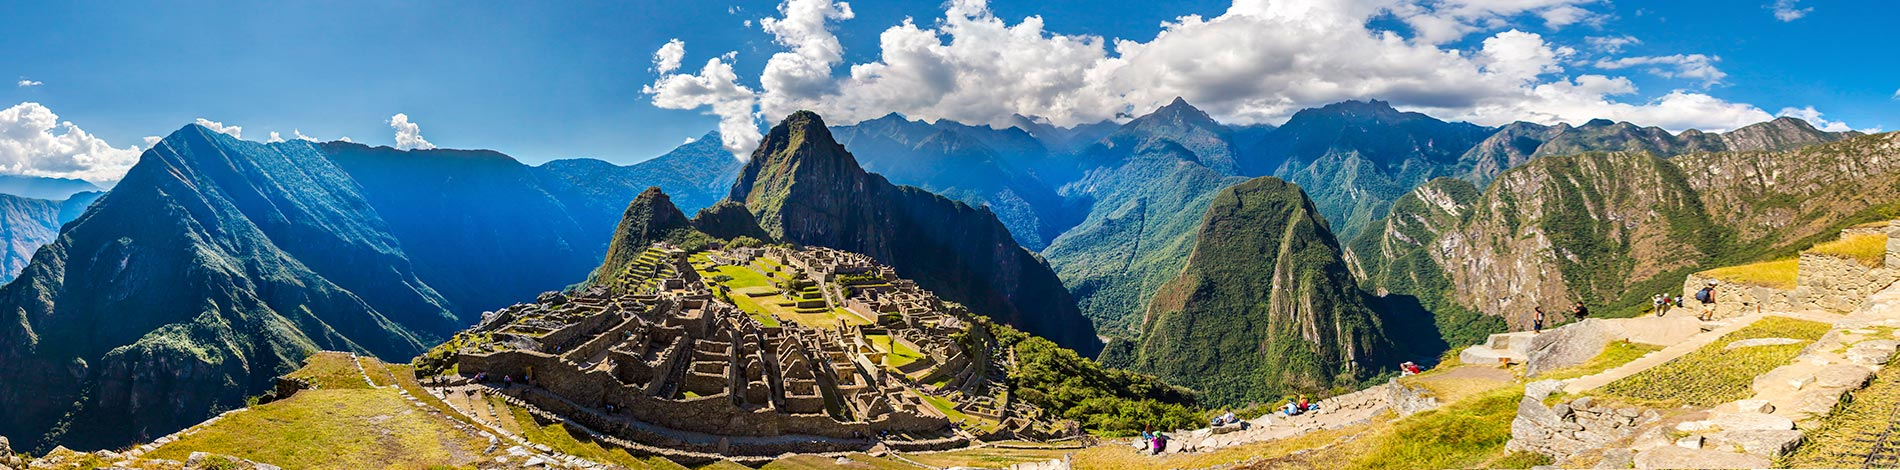 Panoramic view over Machu Picchu Citadel